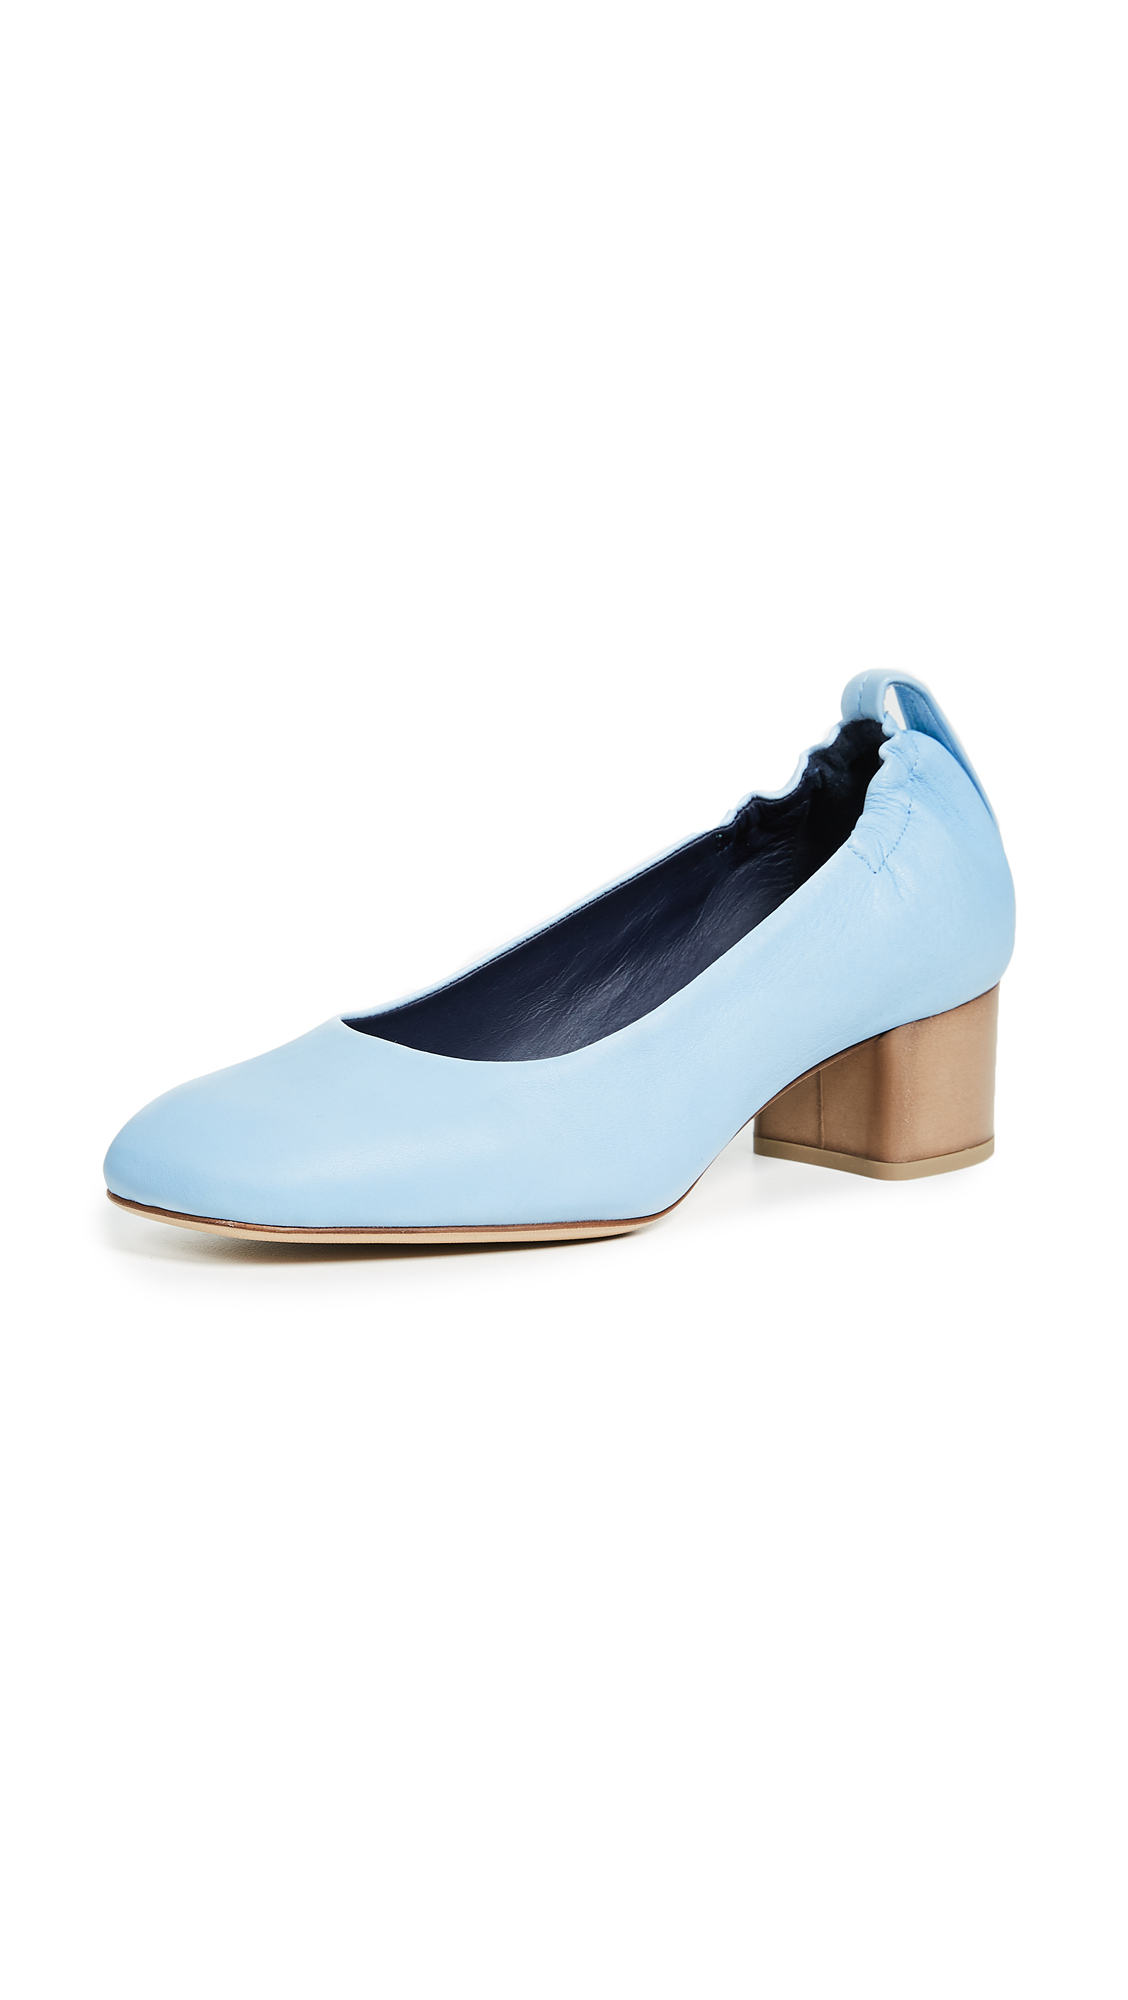 Rag & Bone Eren Pumps - Chambray